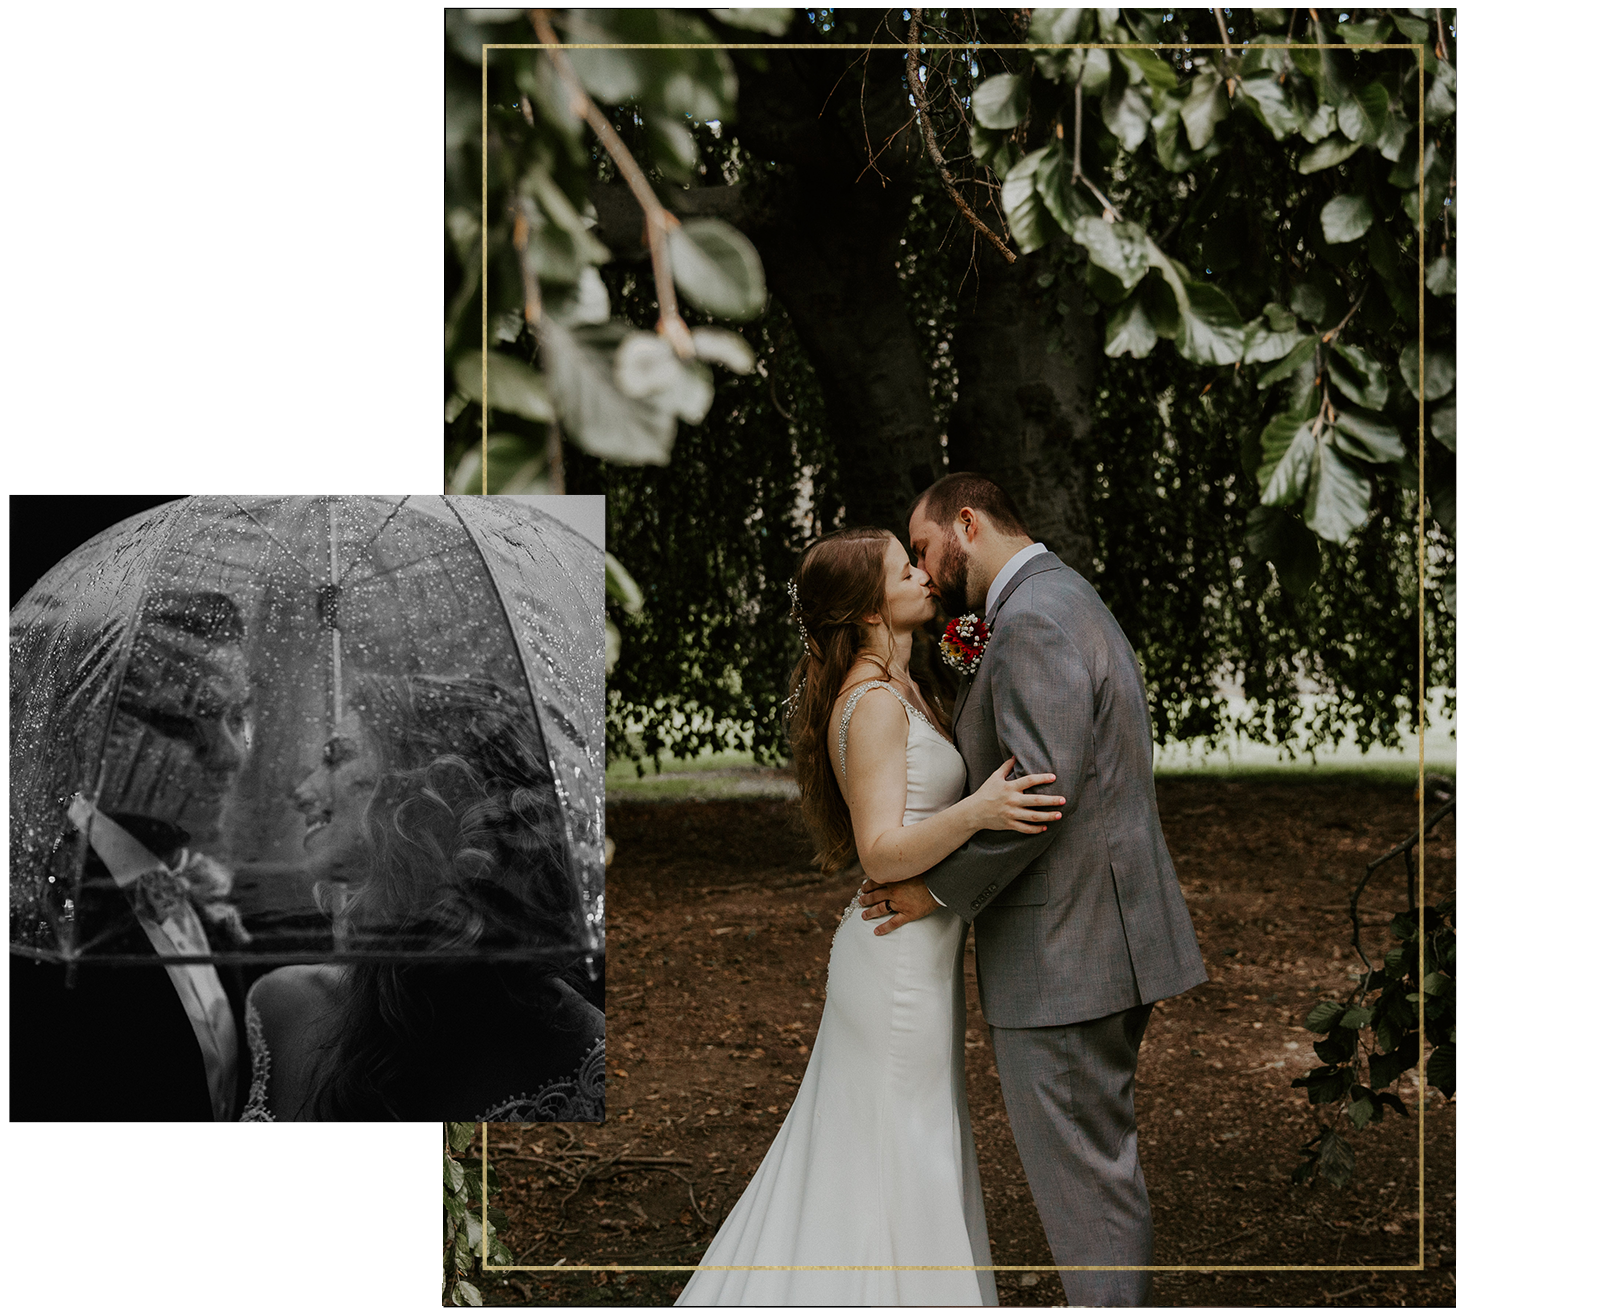 Weddings & Elopements - Capturing real-life love stories.